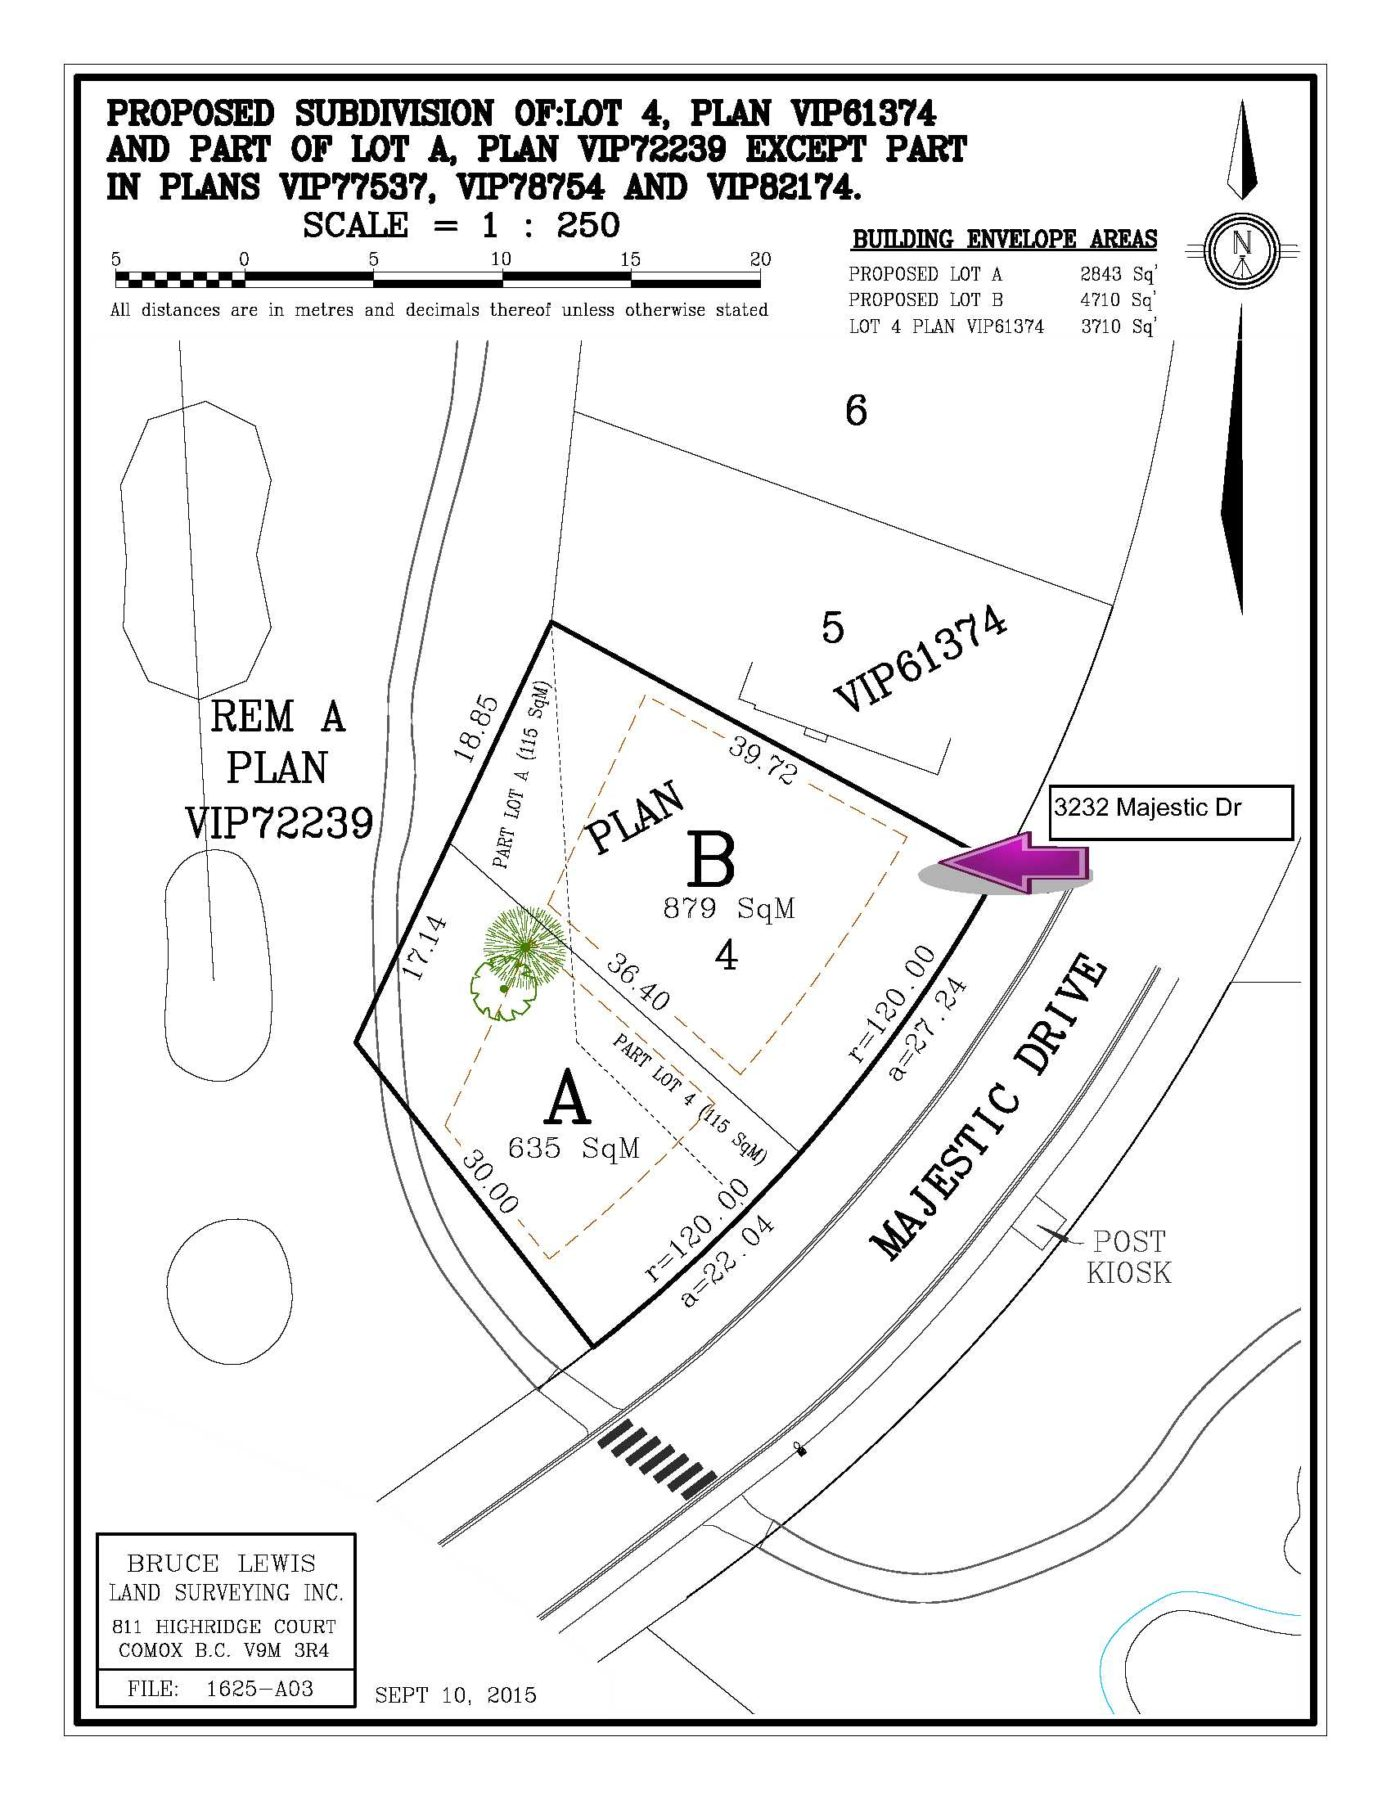 Proposed Subdivision Plot Plan